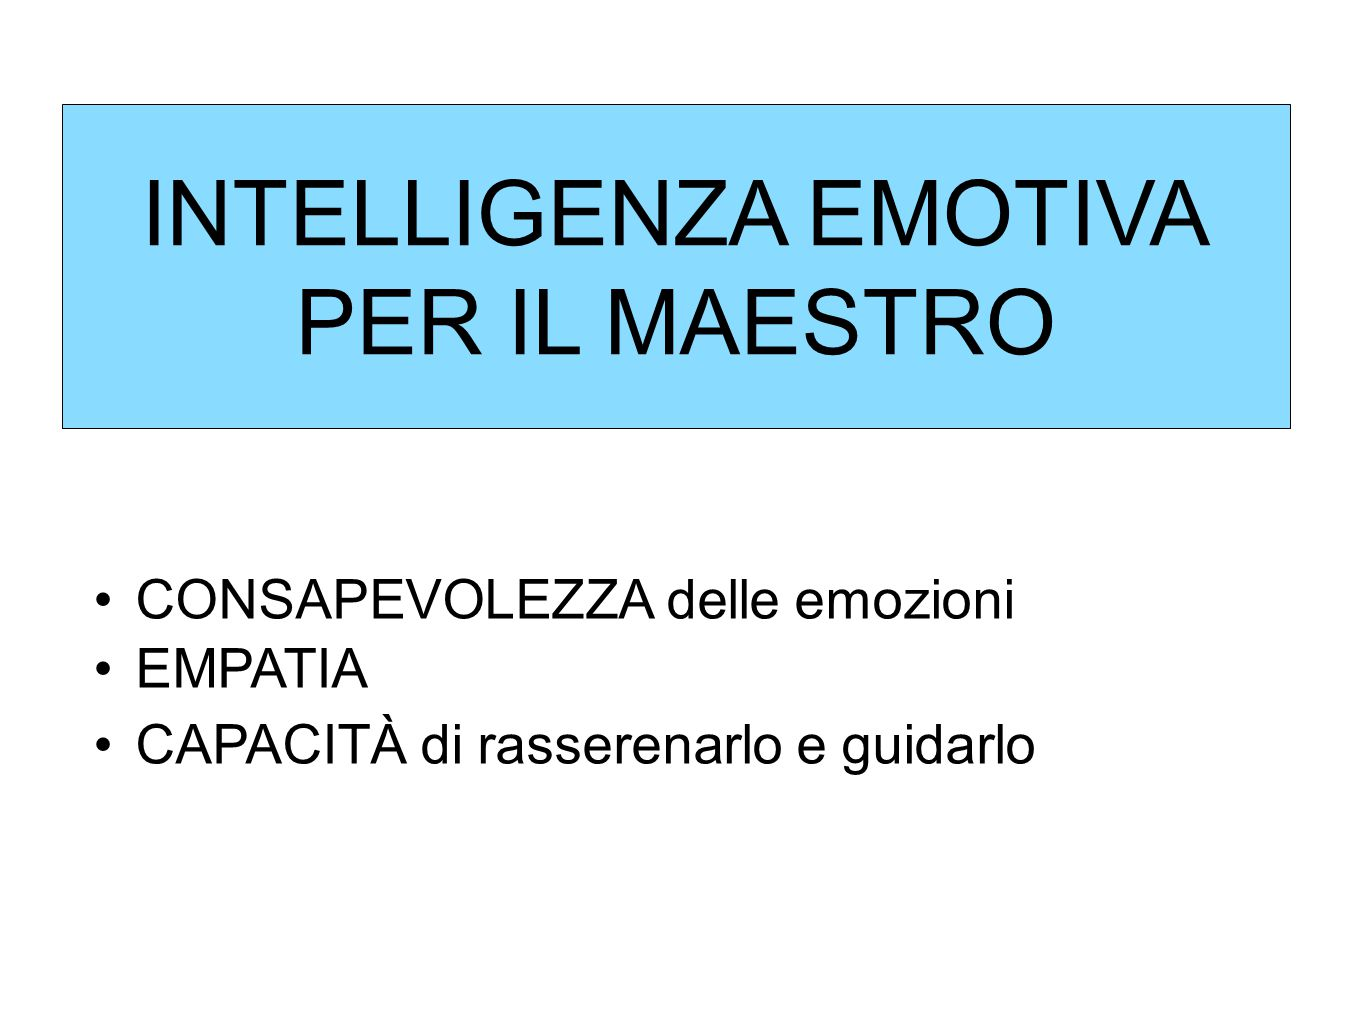 INTELLIGENZA EMOTIVA PER IL MAESTRO